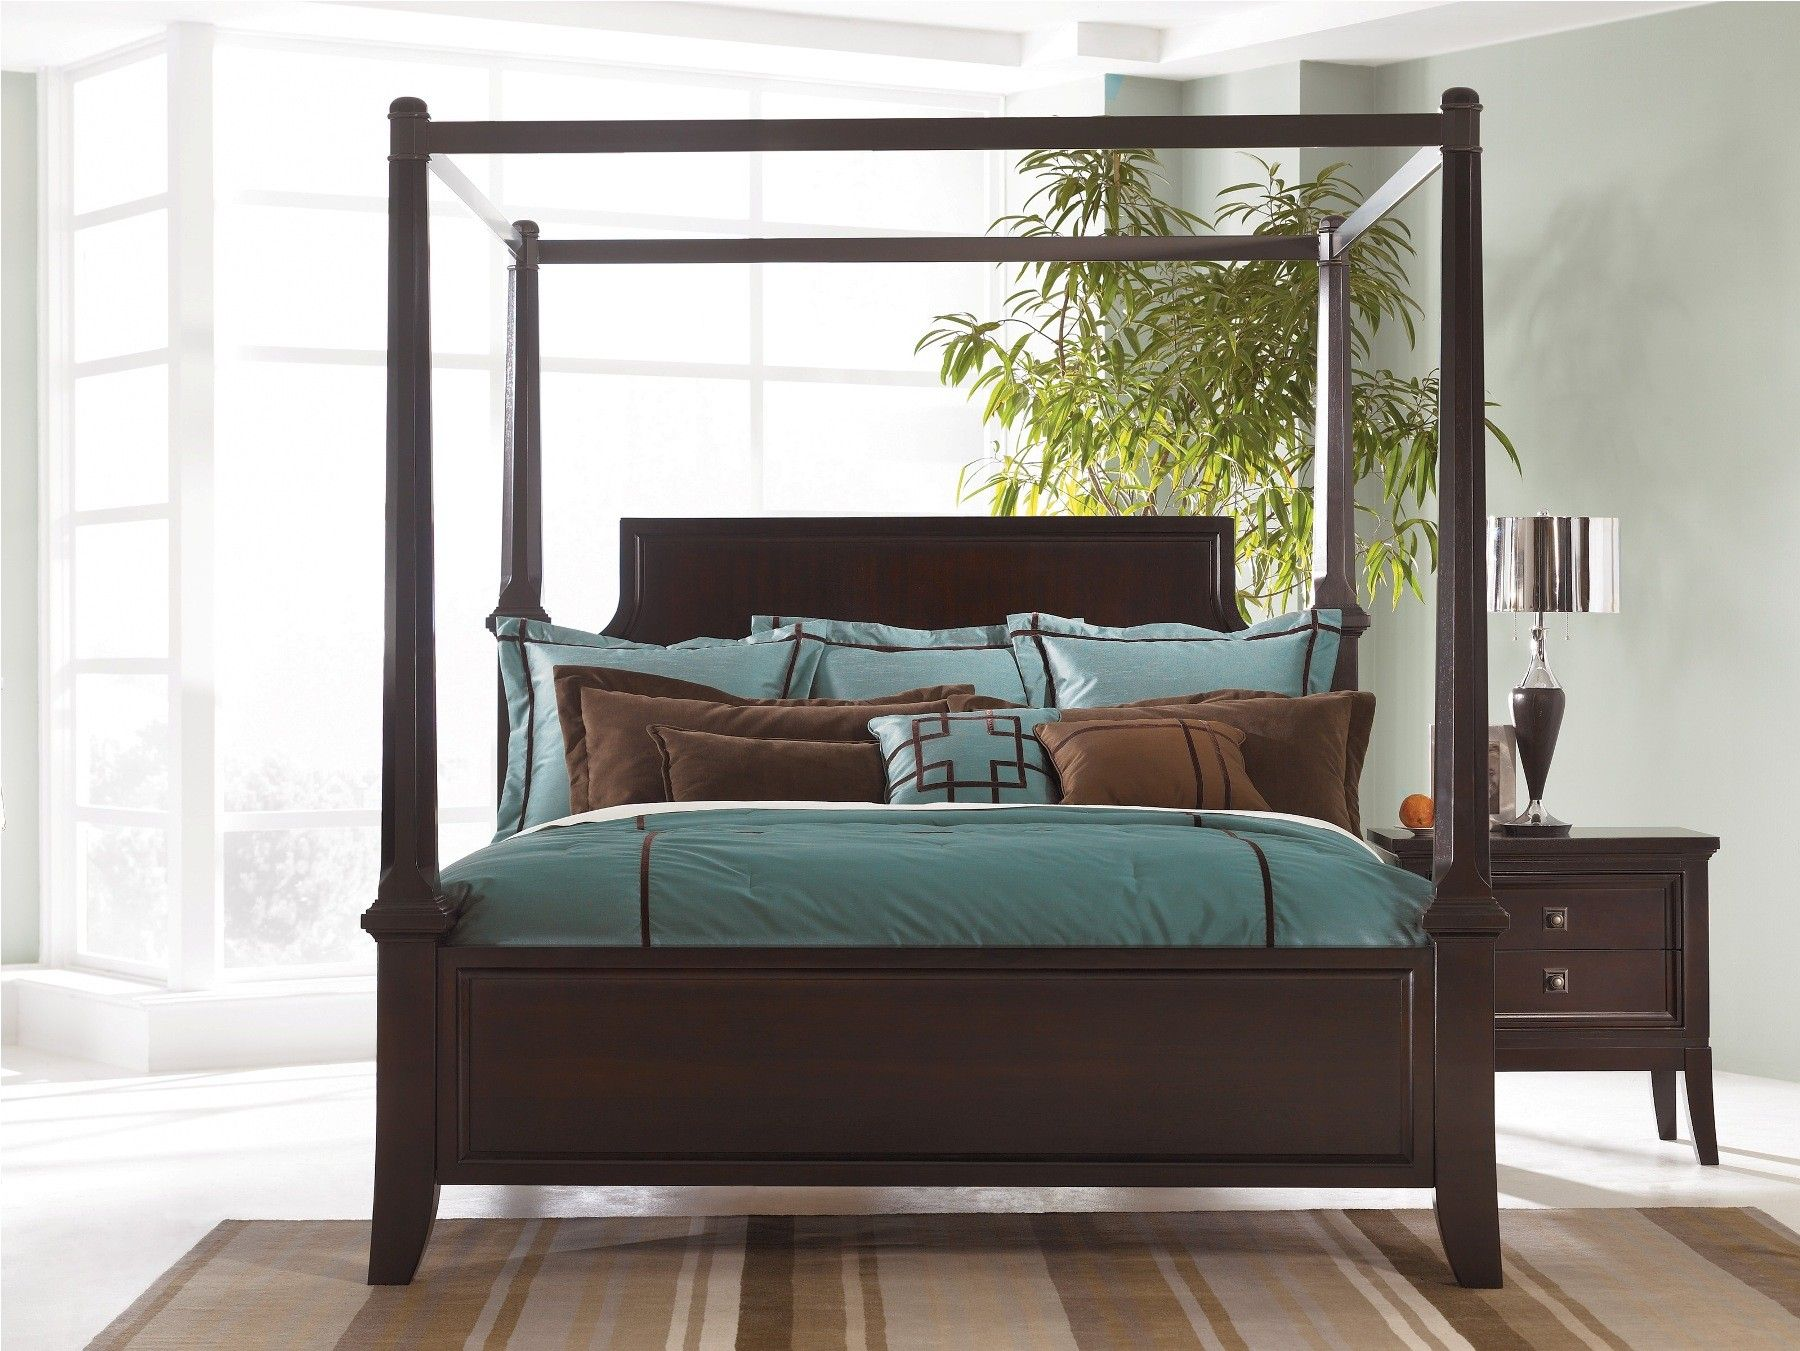 Luxury Ashley Furniture King Size Bedroom Sets Exterior